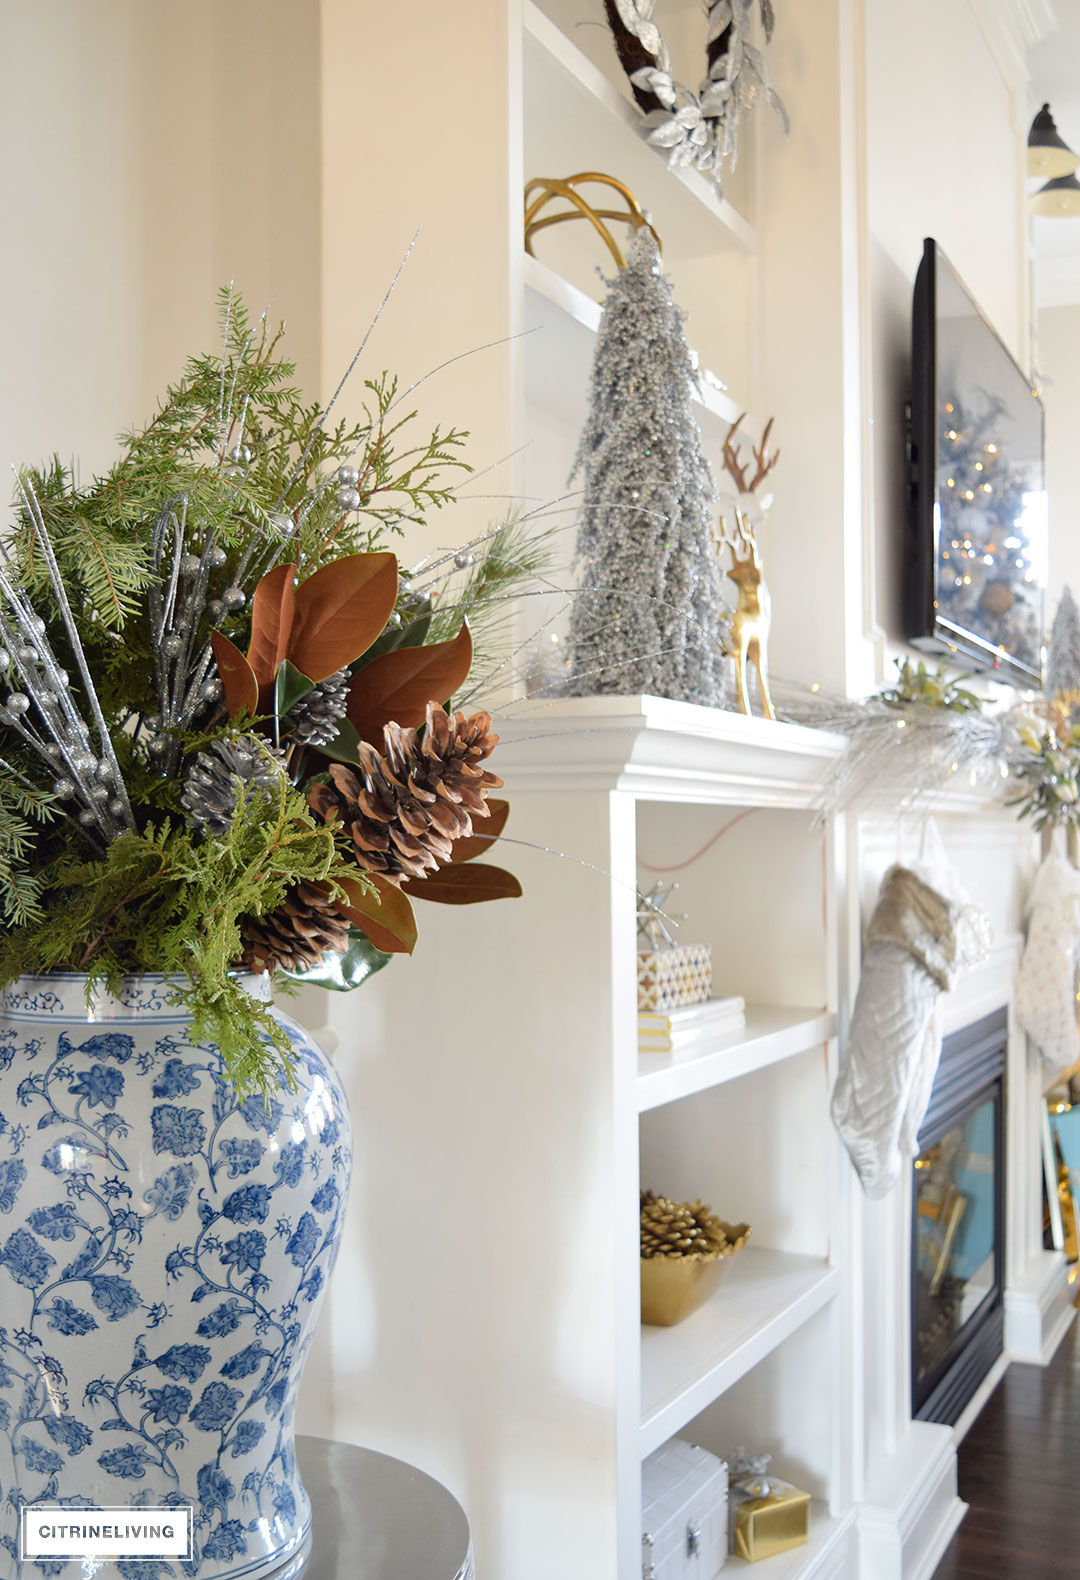 Christmas Home Tour - gorgeous metallics and blue and white e create a chic Holiday theme